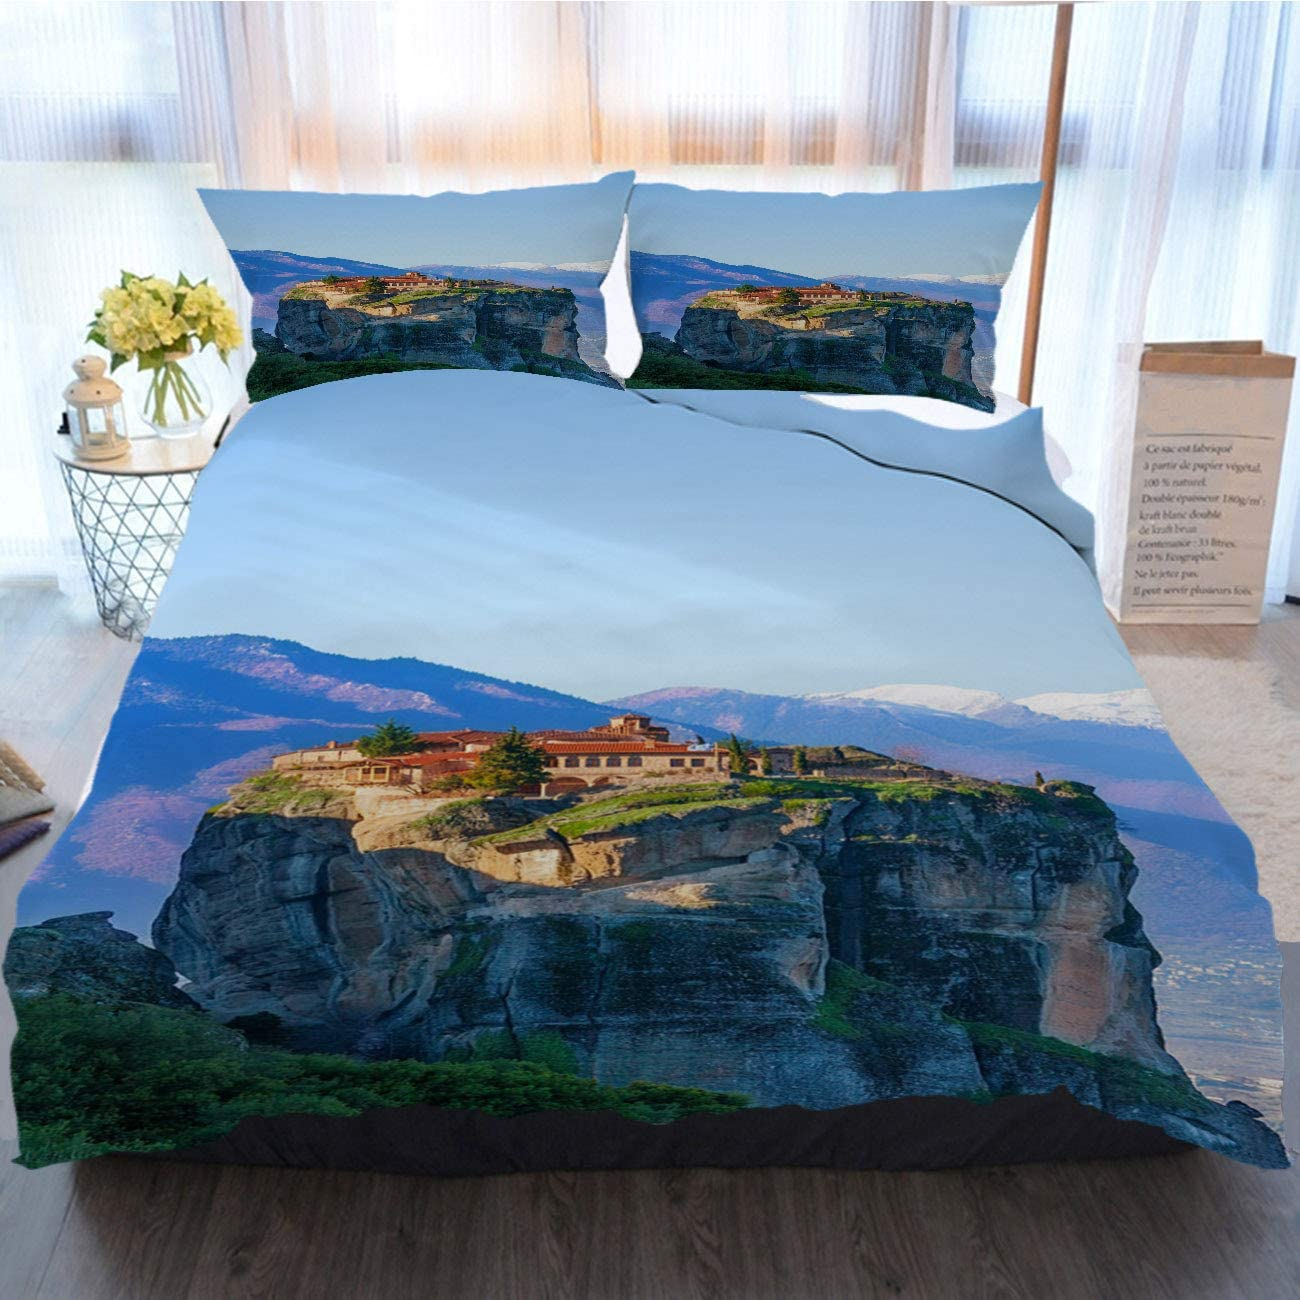 OTTOSUN Christmas Bedding 3 Piece Duvet Cover Sets View On The Monastery of Holy Greece Home Luxury Soft Duvet Comforter Cover,Queen